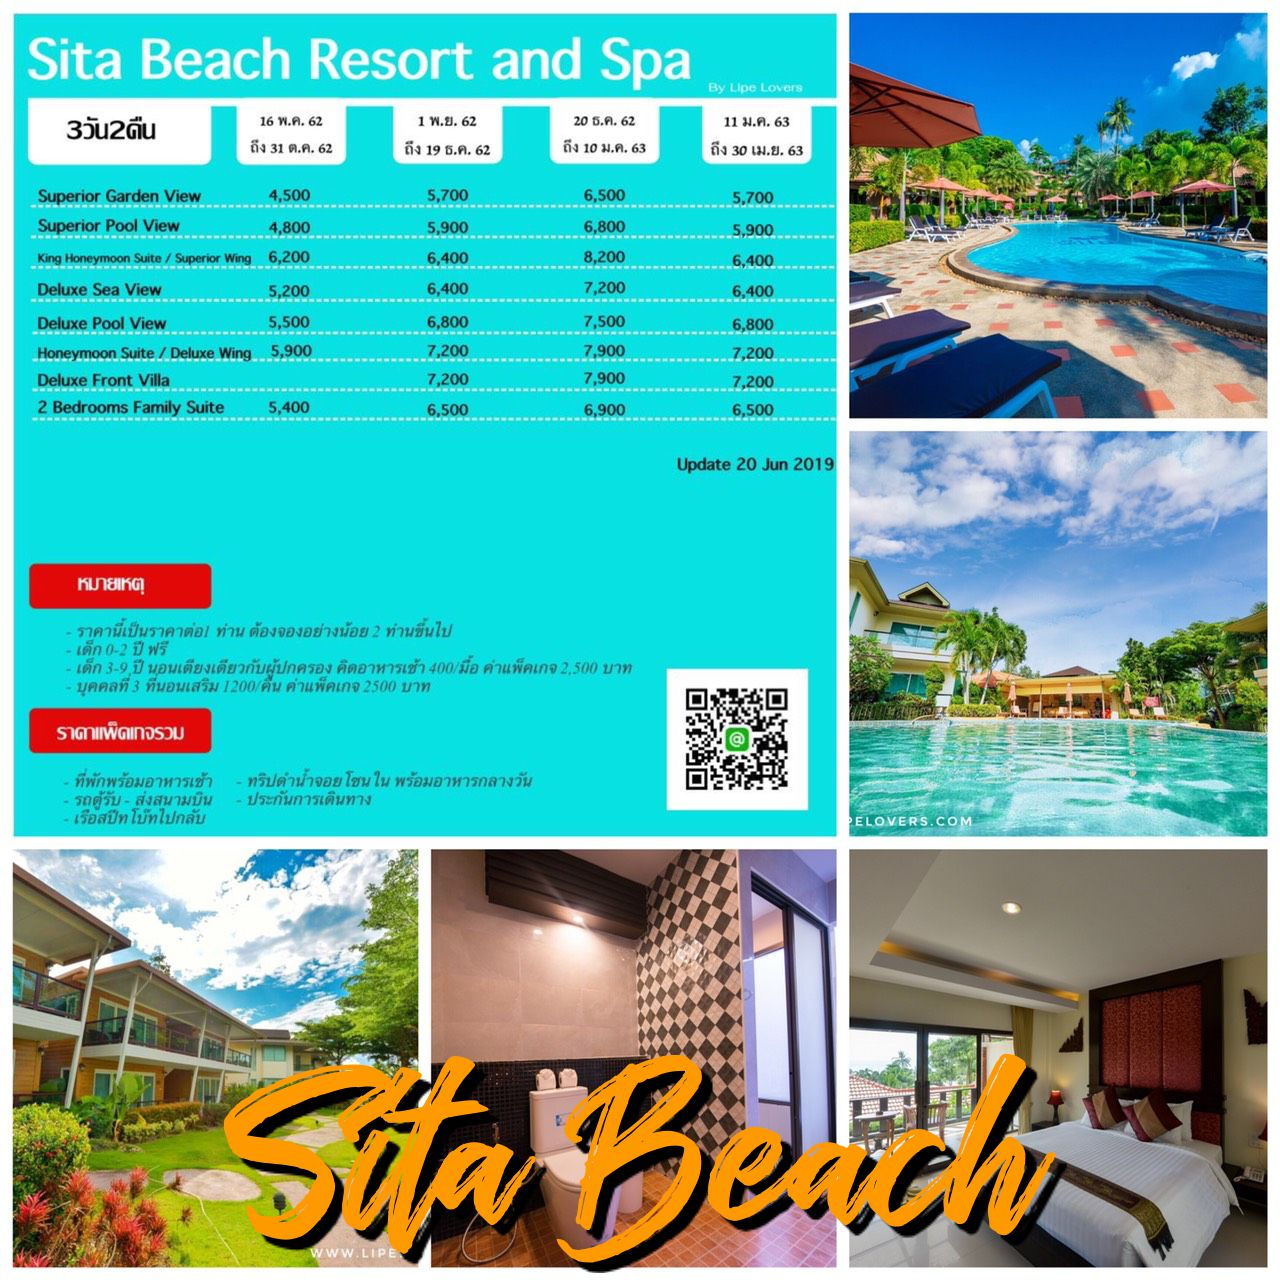 Sita Beach Resort and spa